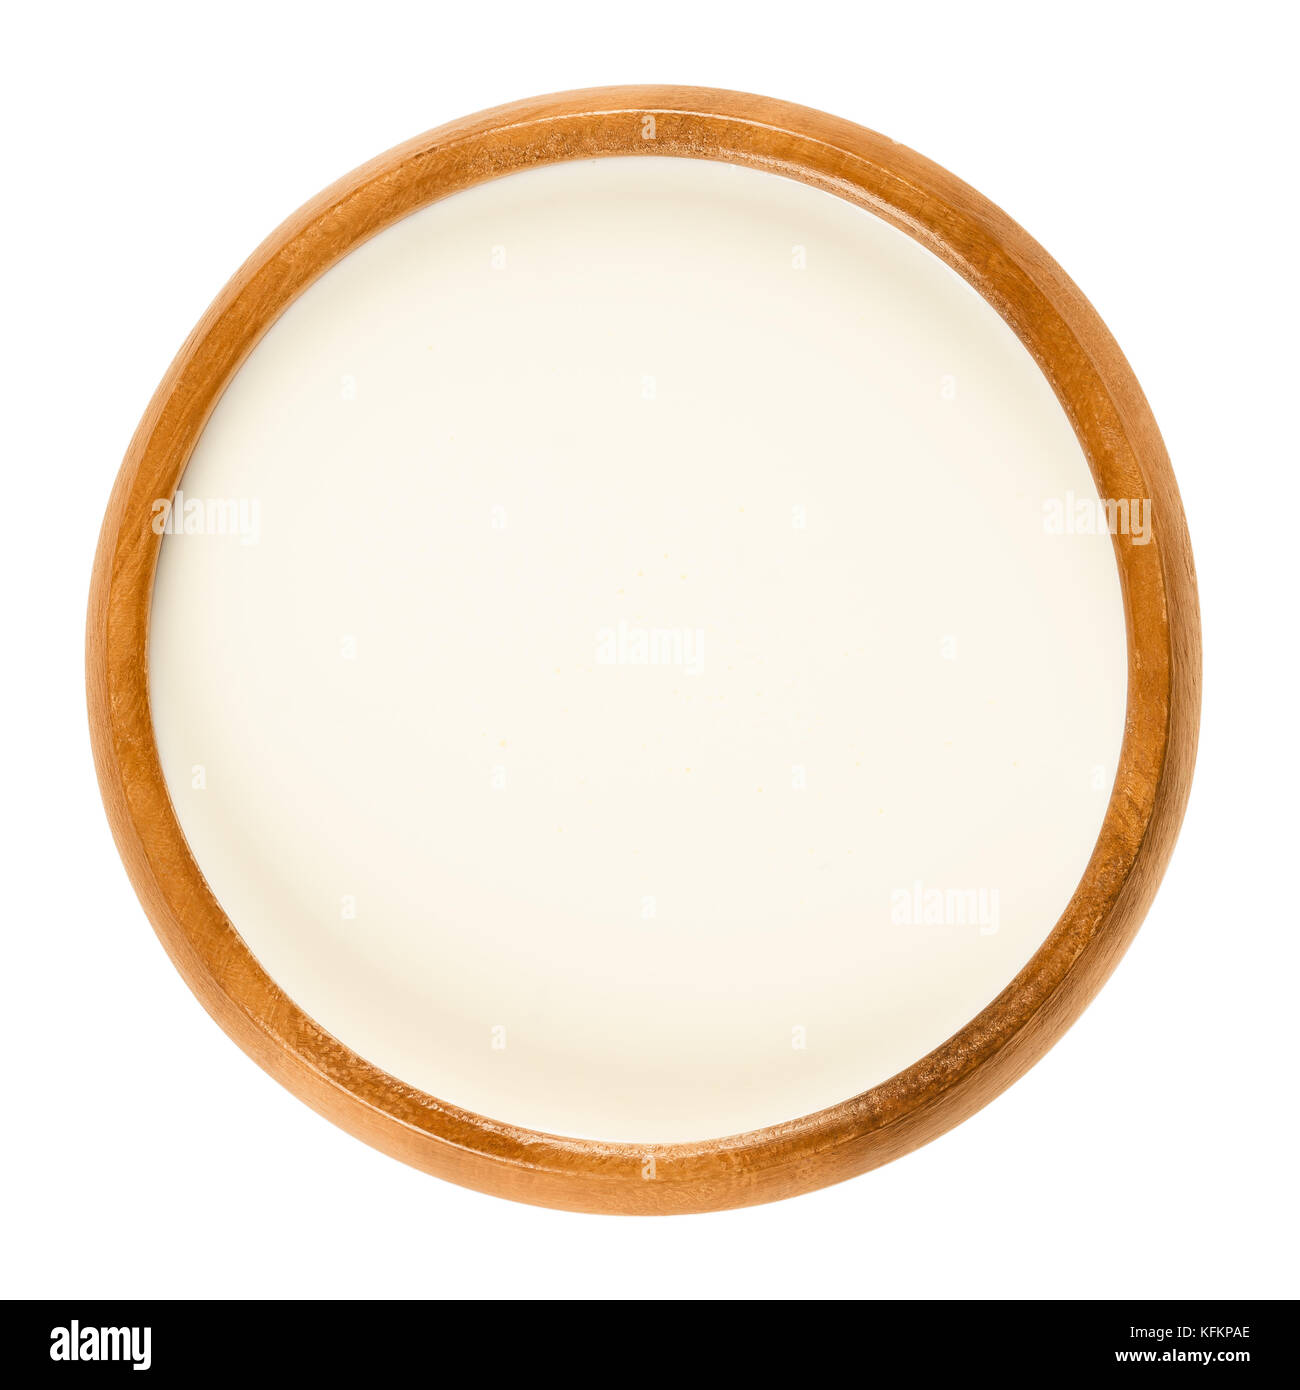 Fresh sweet cream in wooden bowl, a dairy product composed of the higher butterfat layer skimmed from the top of - Stock Image